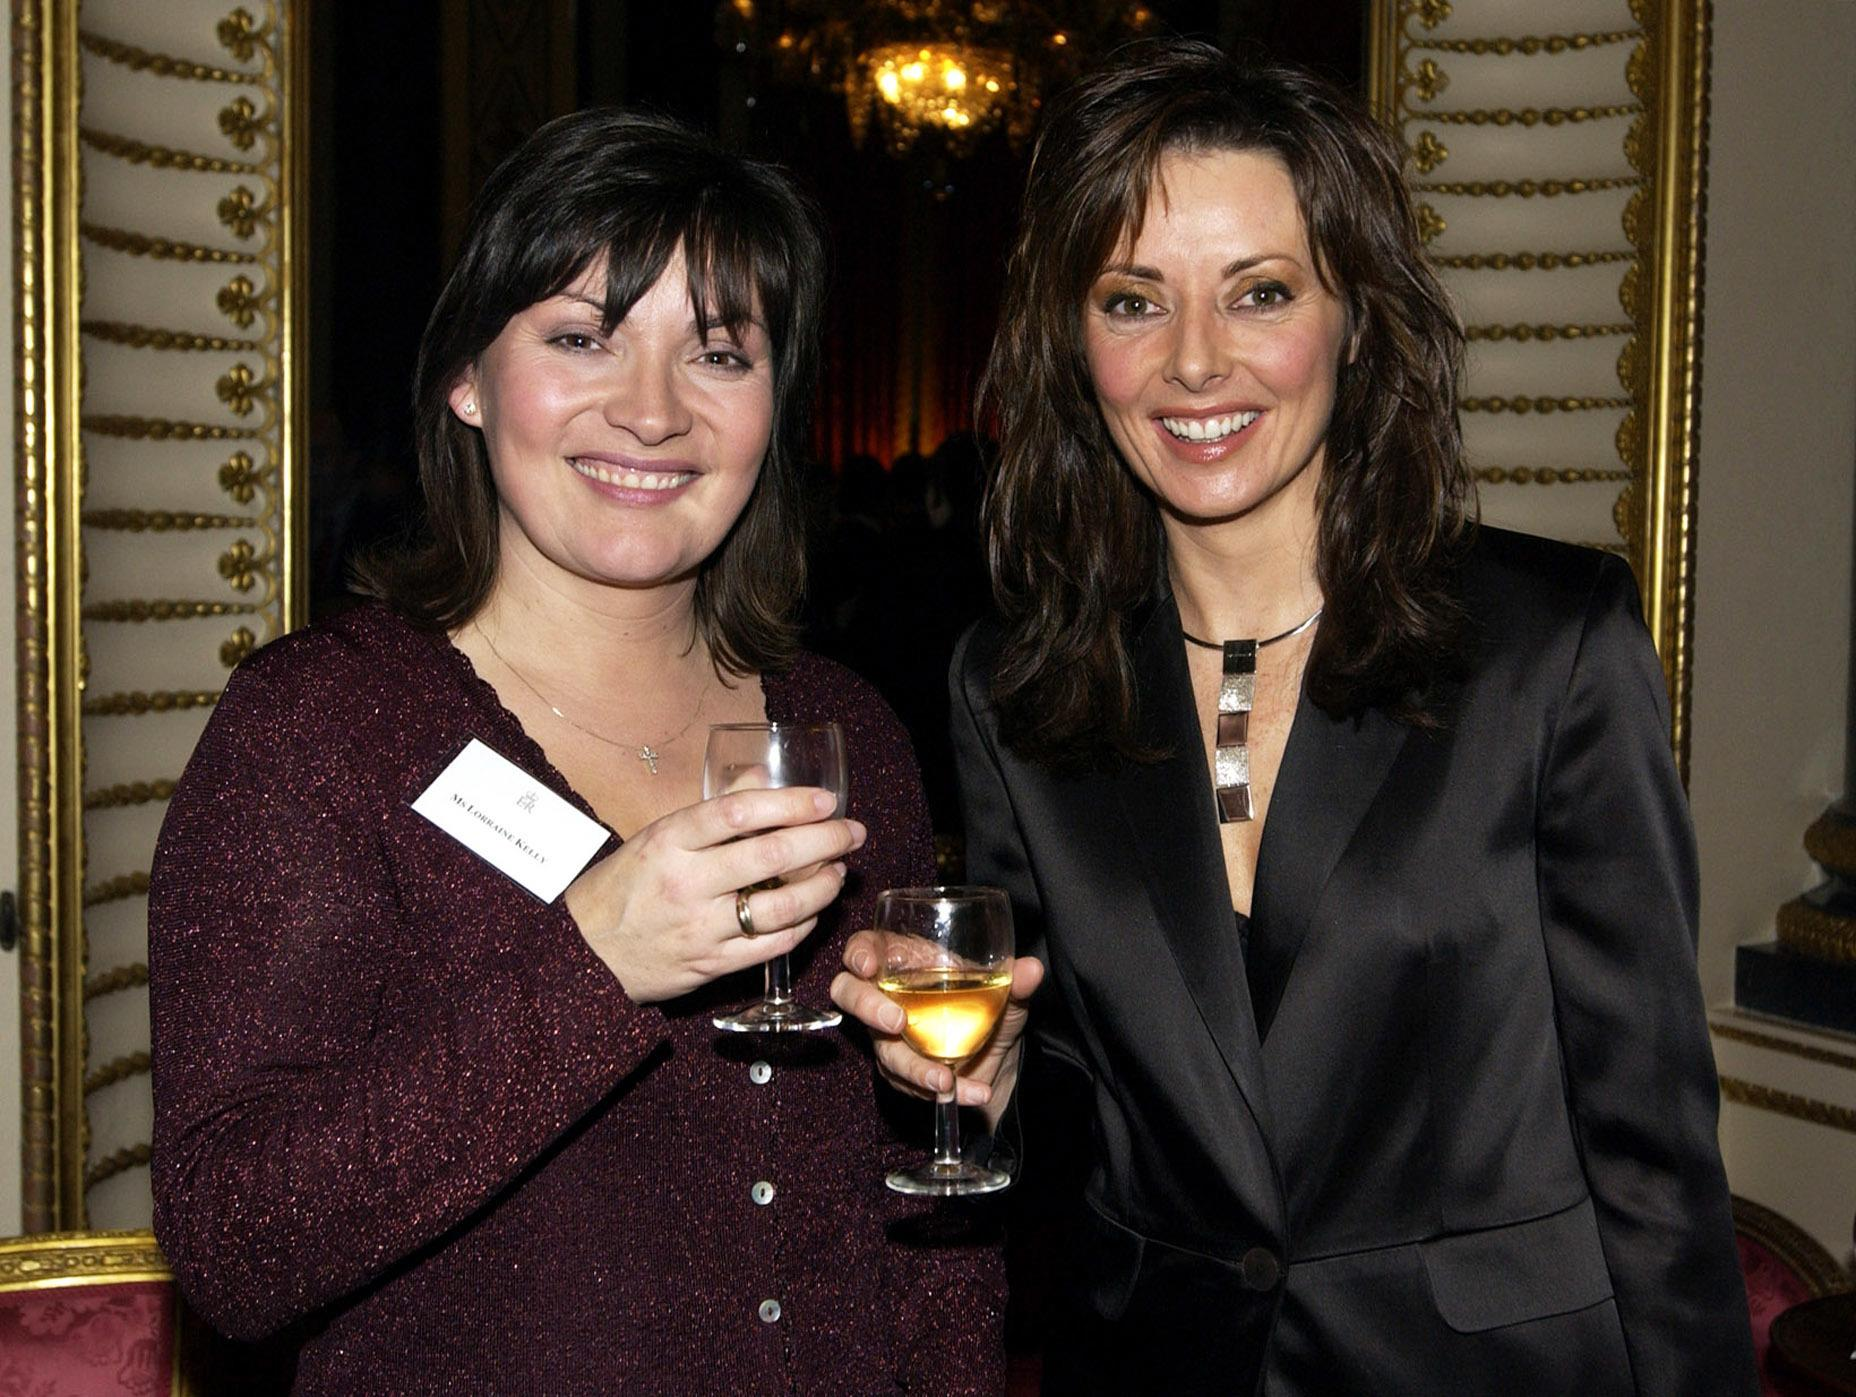 TV presenters Lorraine Kelly (L) and Carol Vorderman at a reception for the British broadcasting industry at Buckingham Palace.